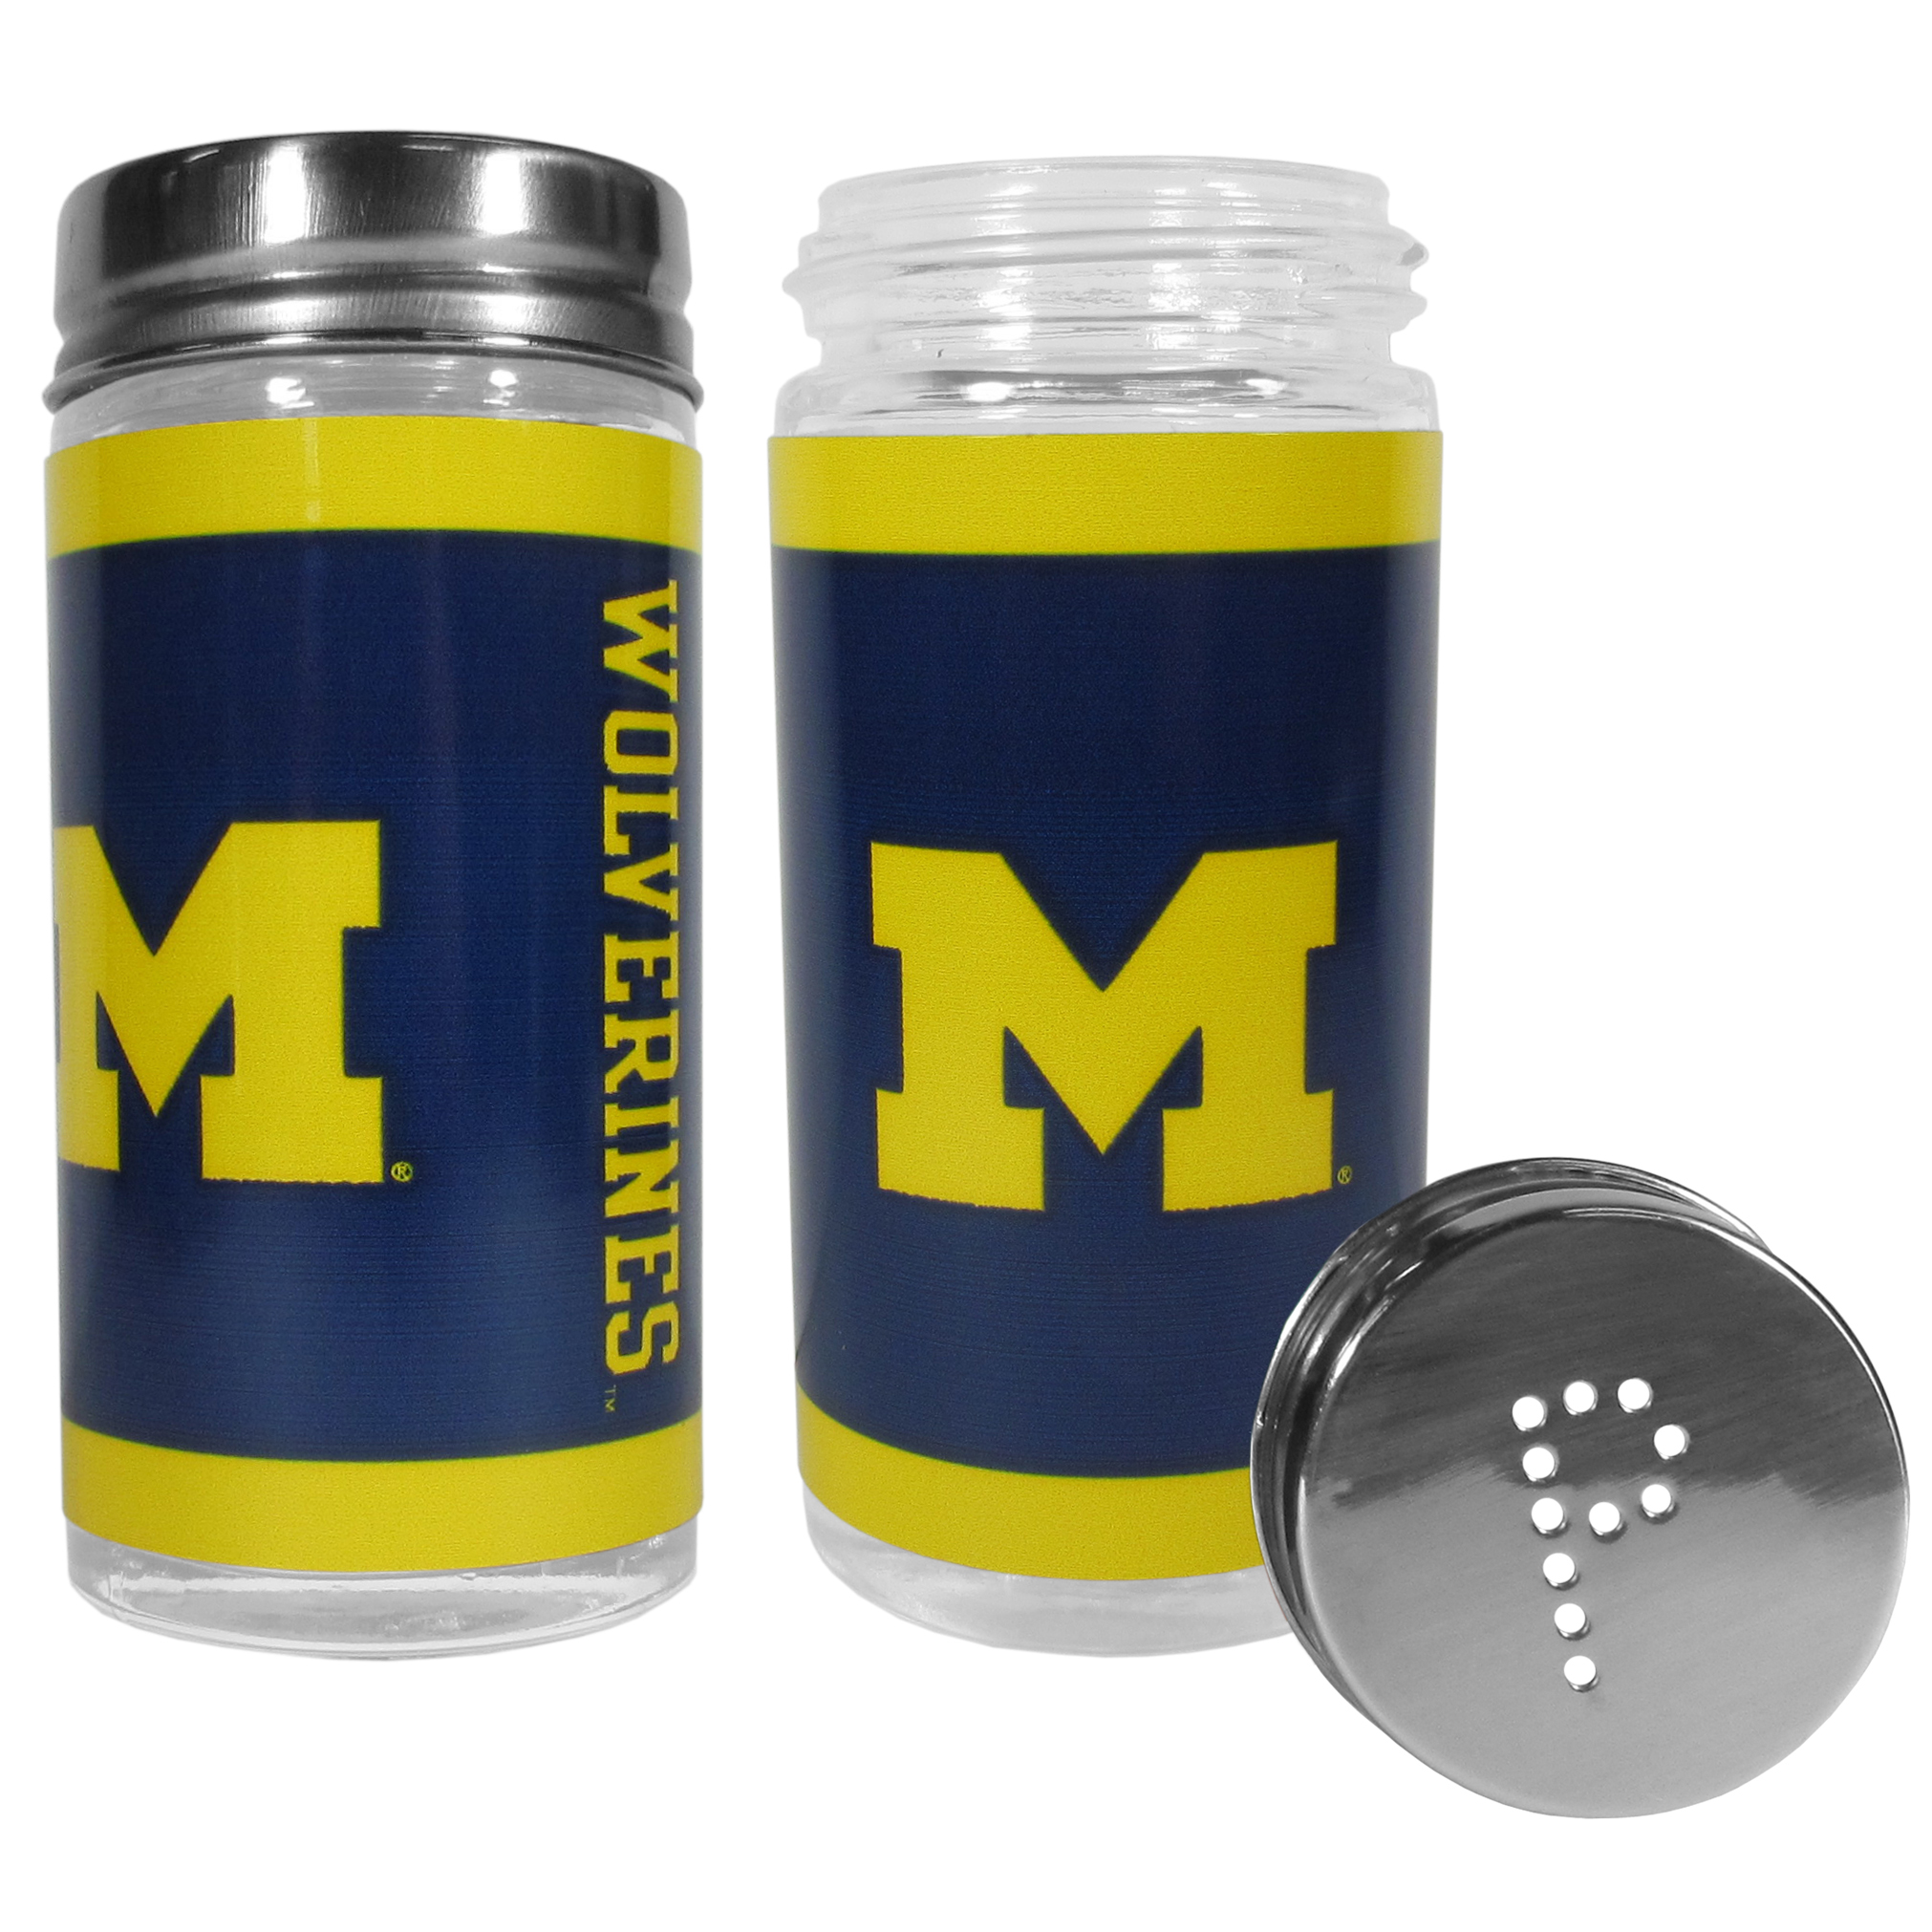 Michigan Wolverines Tailgater Salt & Pepper Shakers - No tailgate party is complete without your Michigan Wolverines salt & pepper shakers featuring bright team graphics. The glass shakers are 3.75 inches tall and the screw top lids have holes that spell out P and S. These team shakers are a great grill accessory whether you are barbecuing on the patio, picnicing or having a game day party.